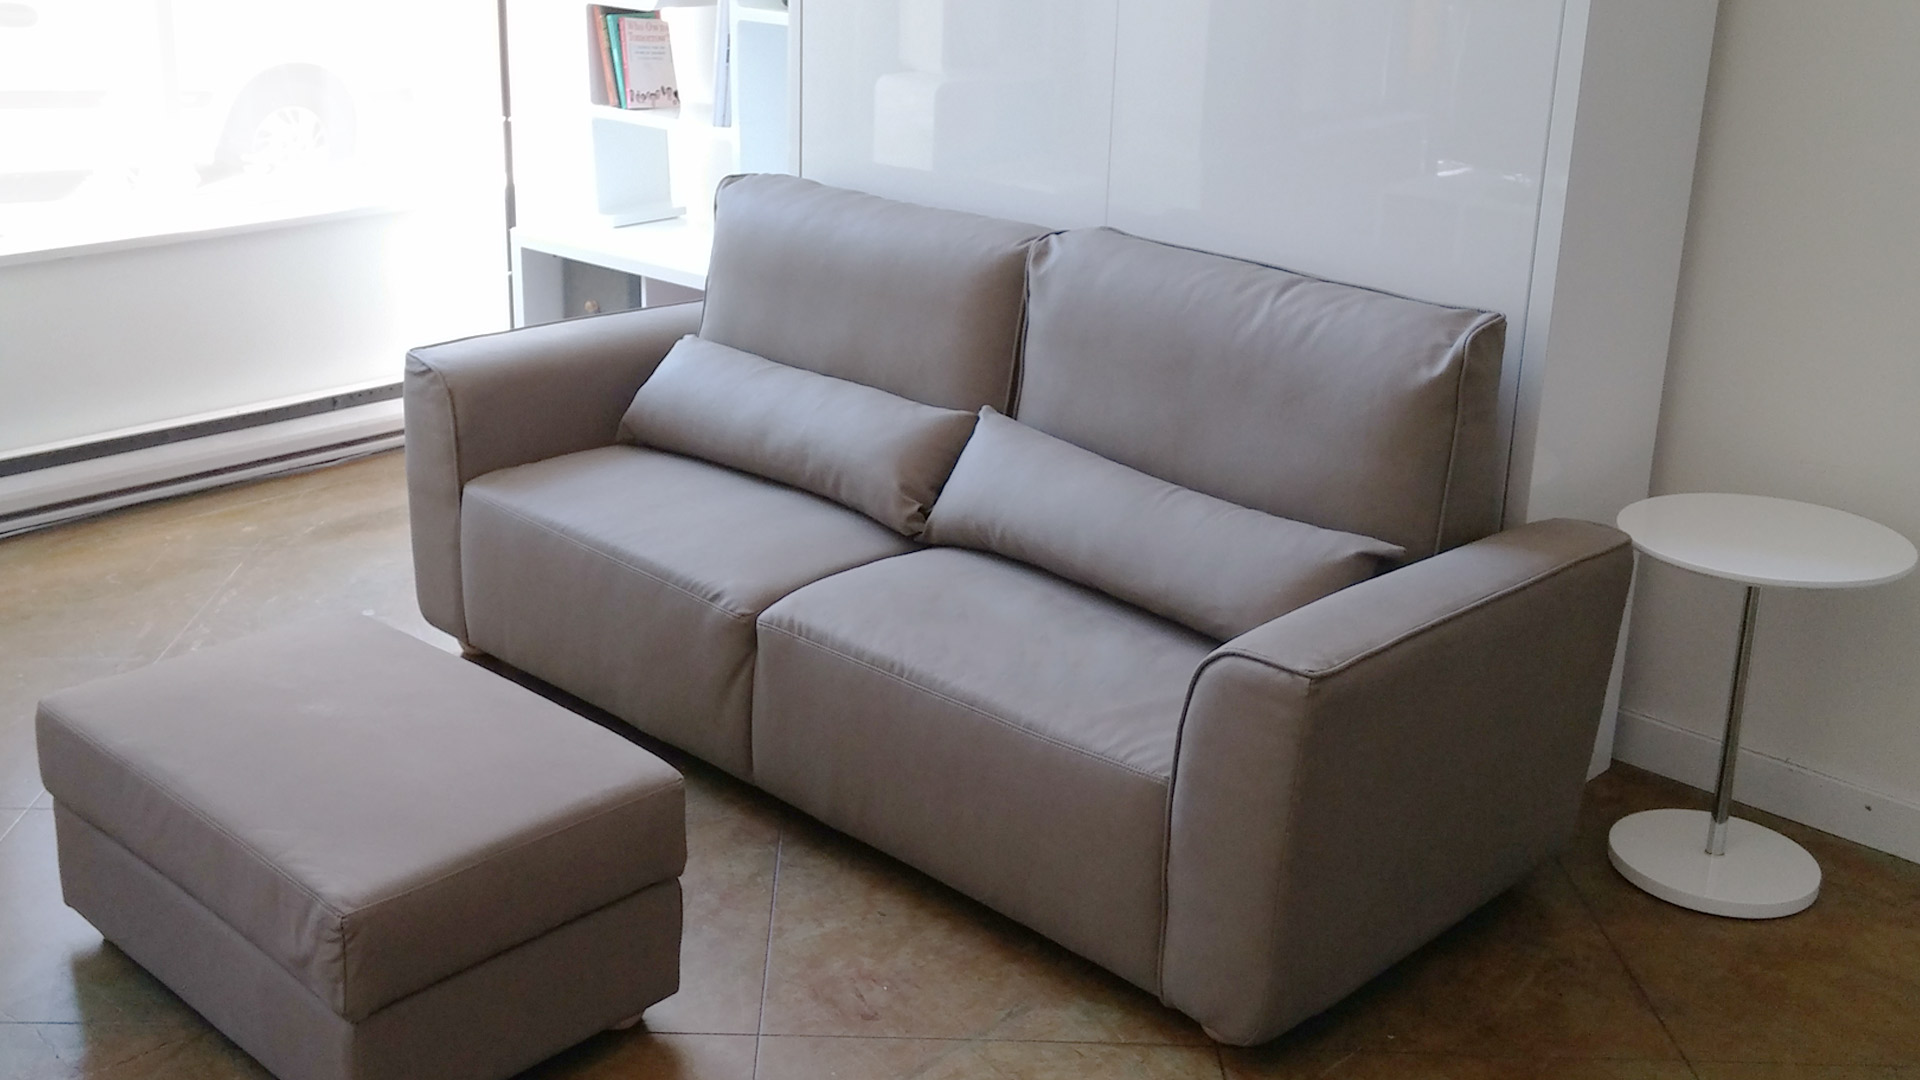 murphysofa minima expand furniture folding tables